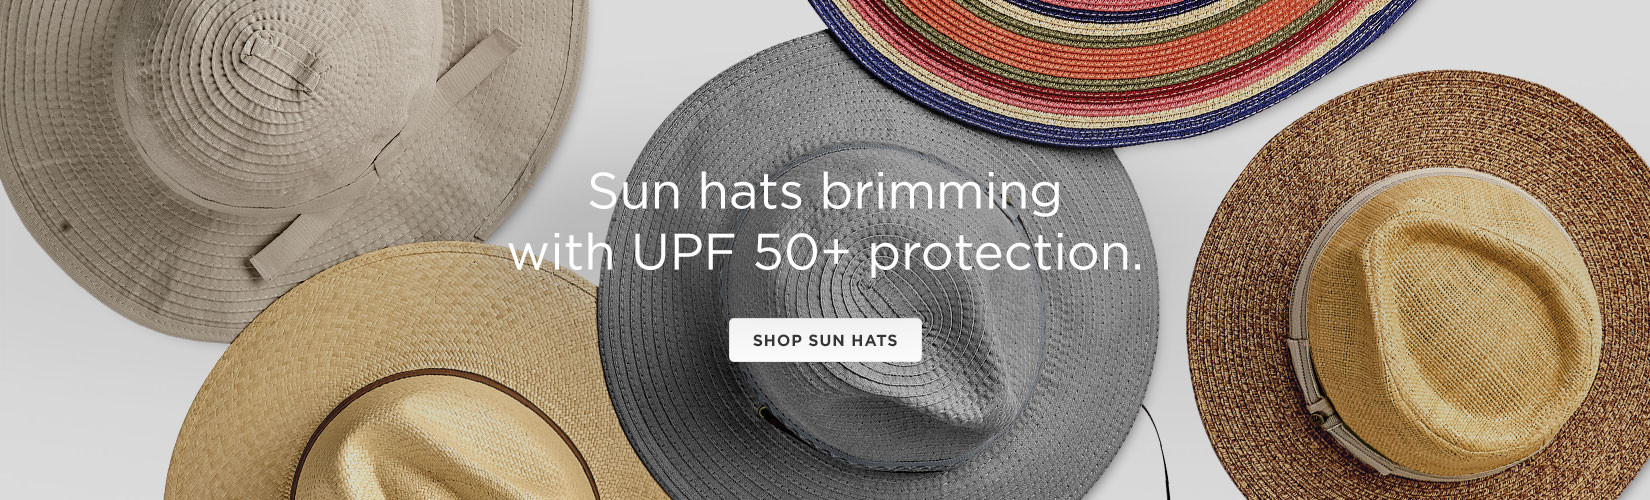 Sun hats brimming with UPF 50+ protection. Shop Sun Hats